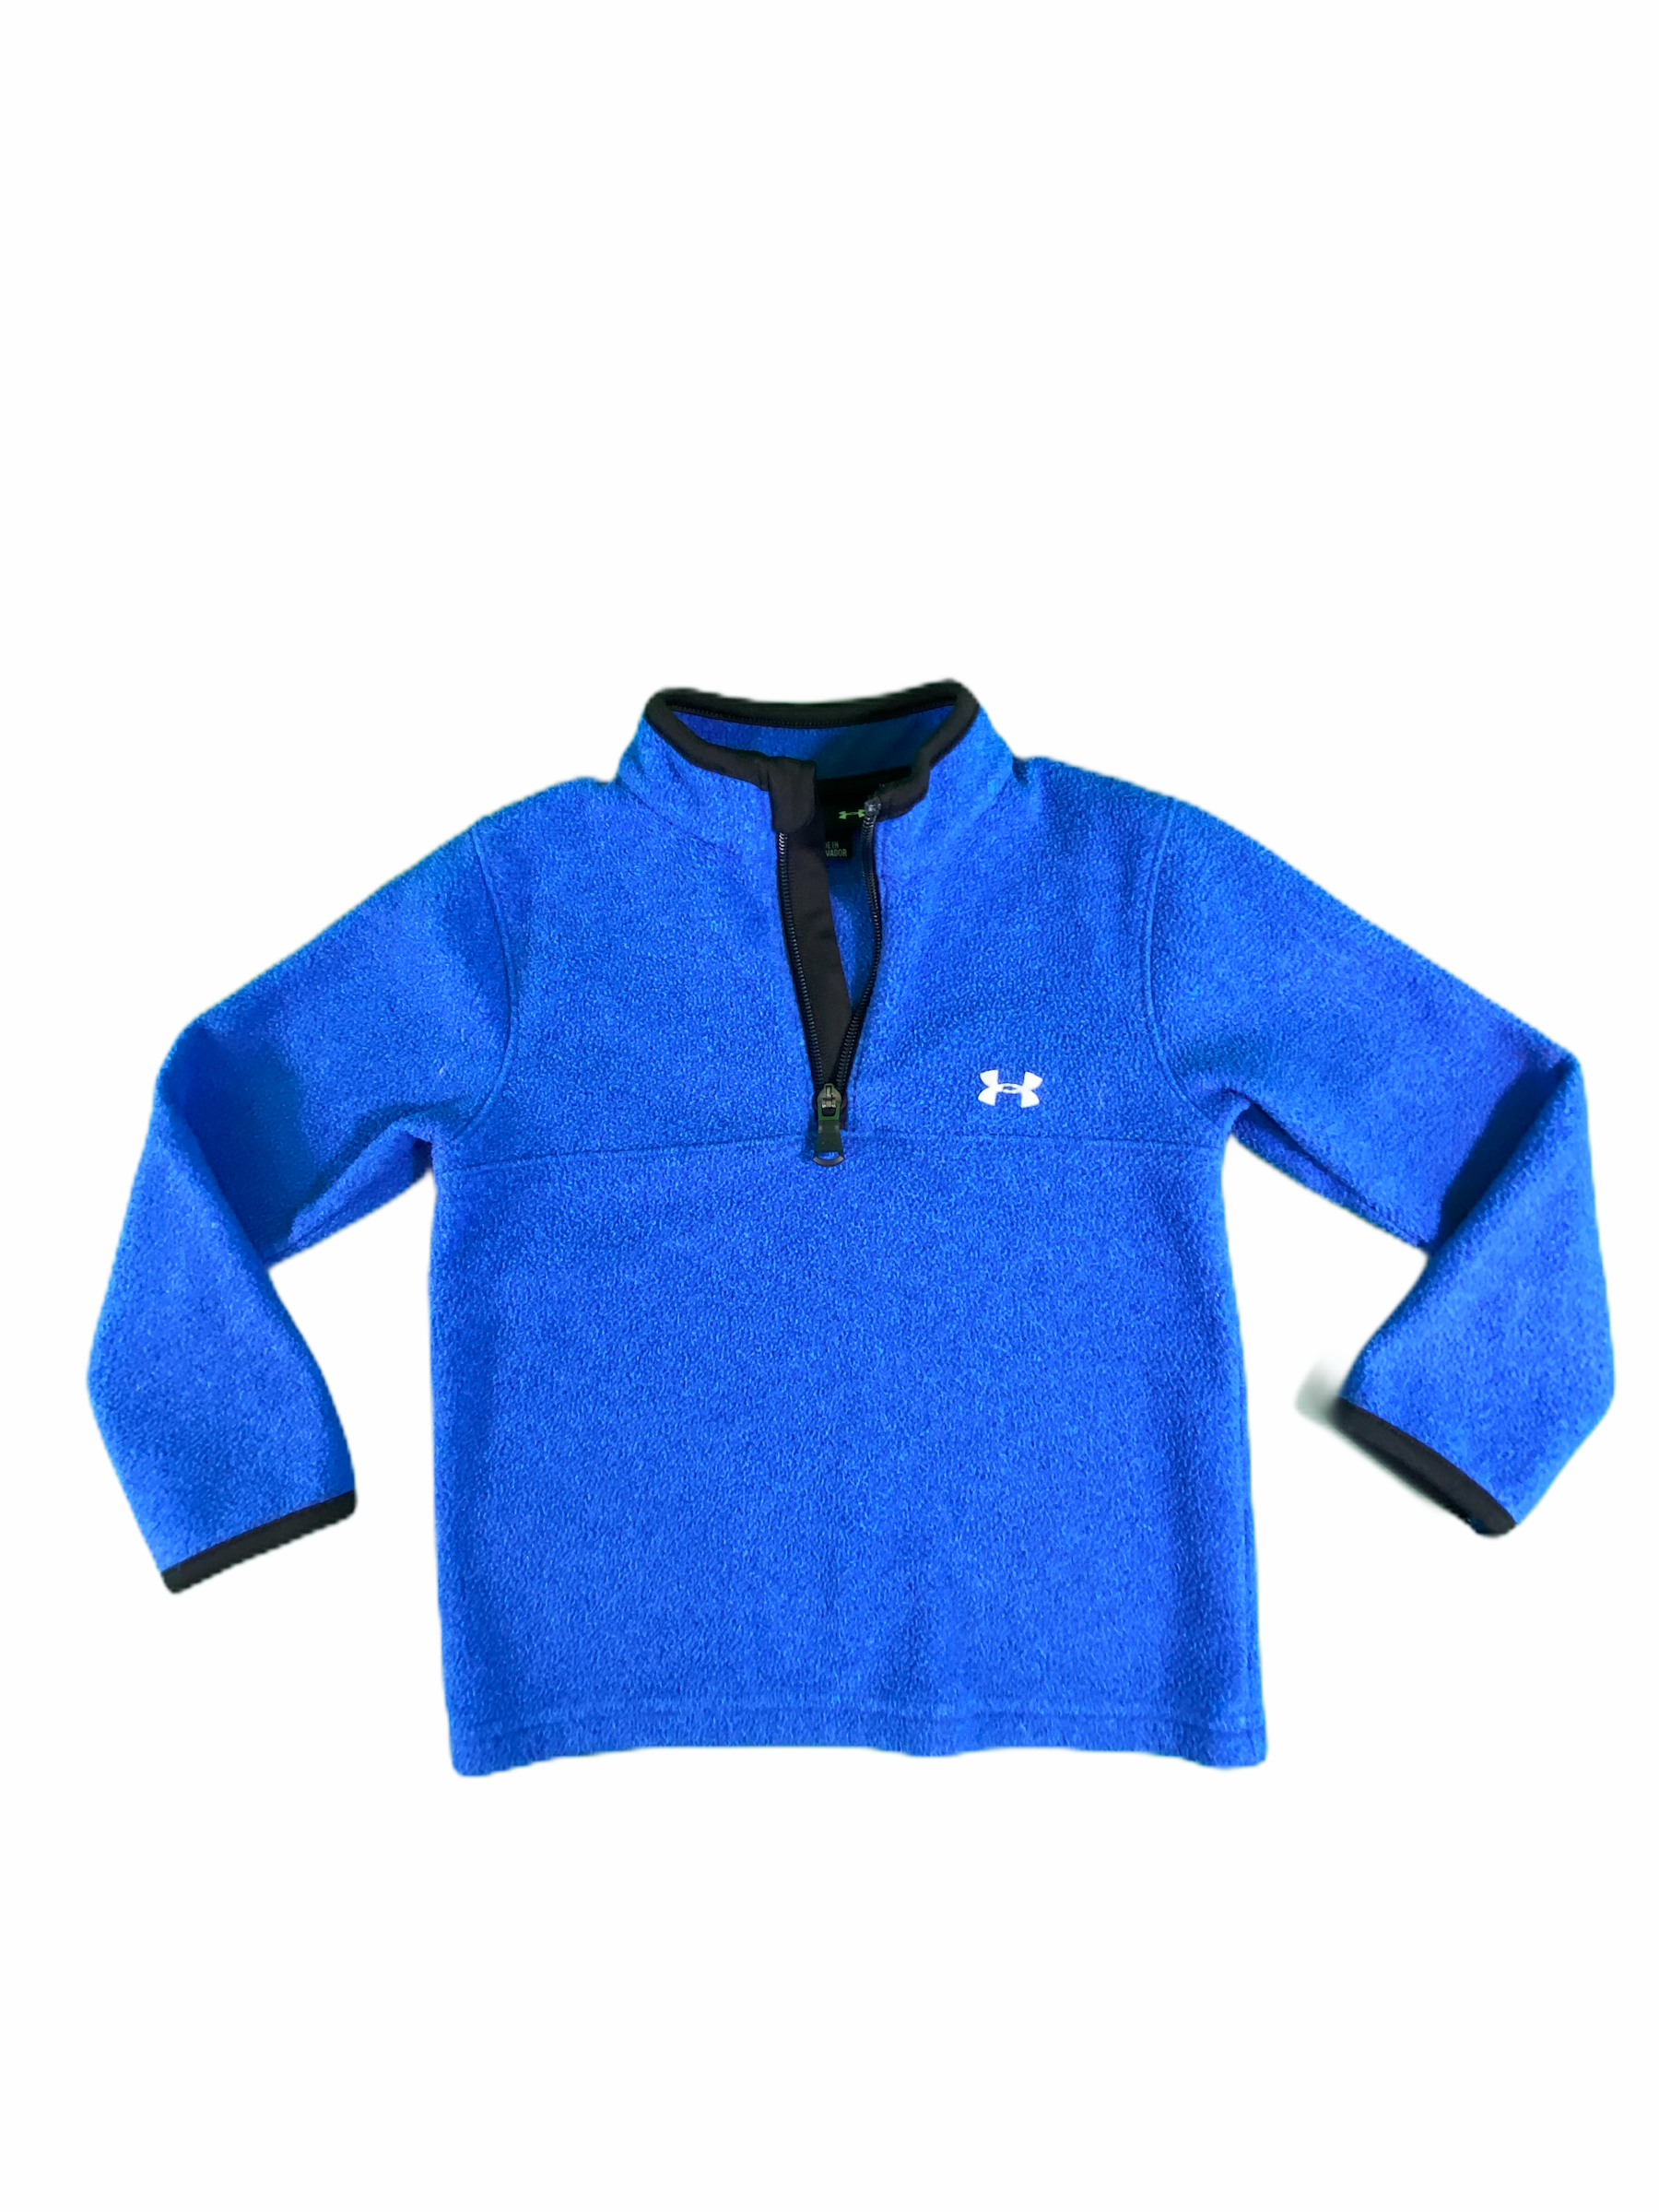 Under Armour Blue Fleece Pullover (3T Boys)